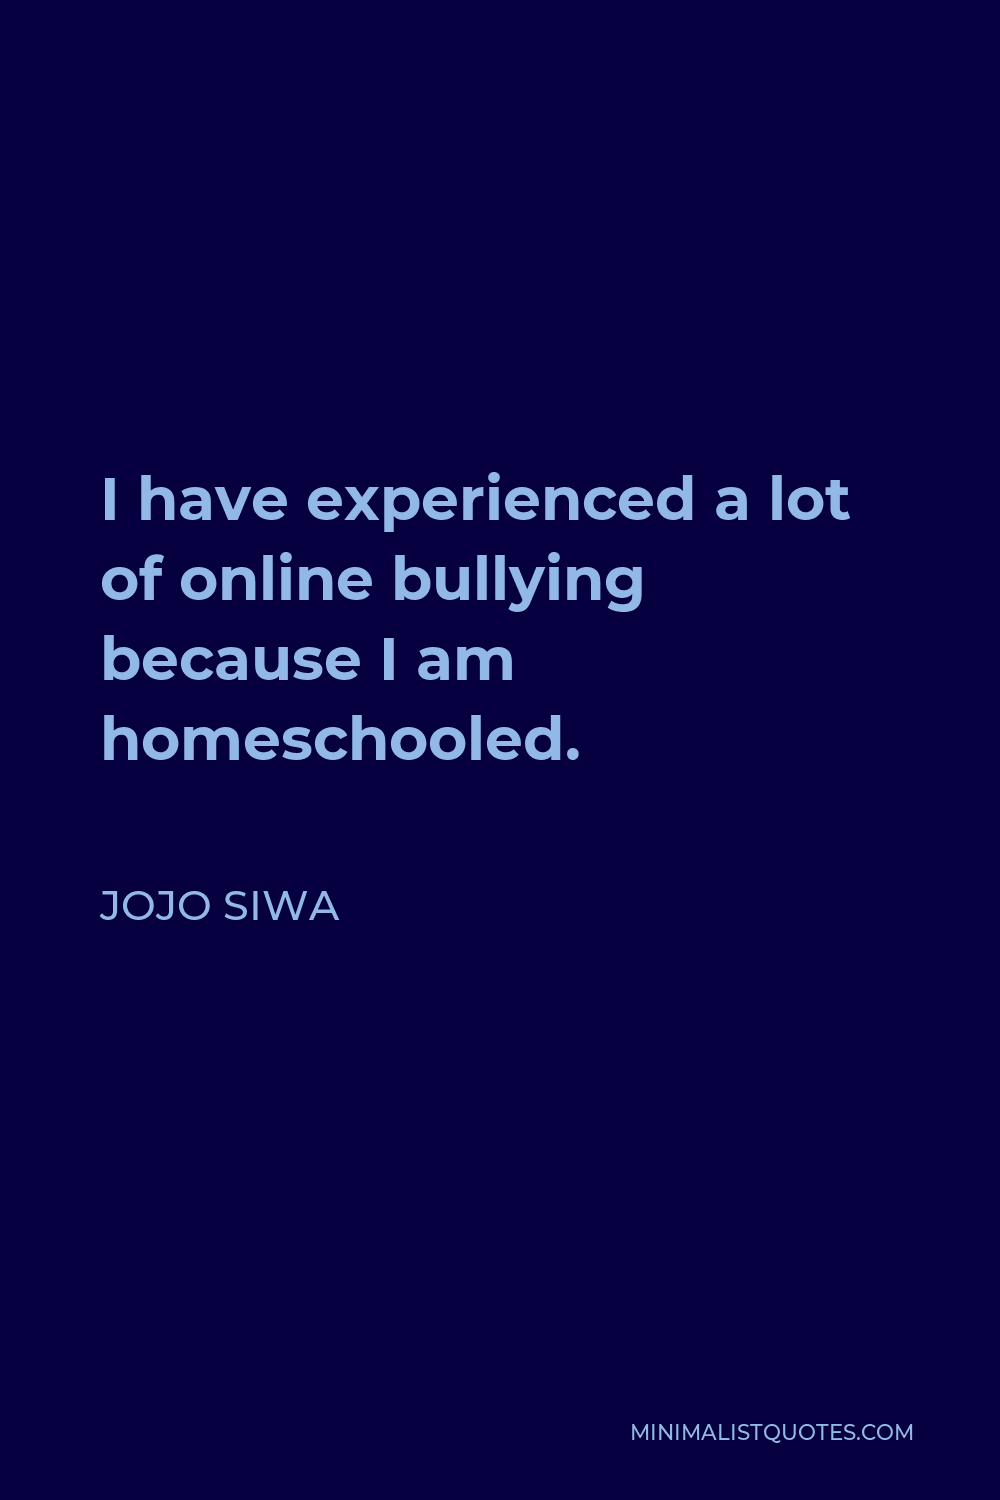 JoJo Siwa Quote - I have experienced a lot of online bullying because I am homeschooled.